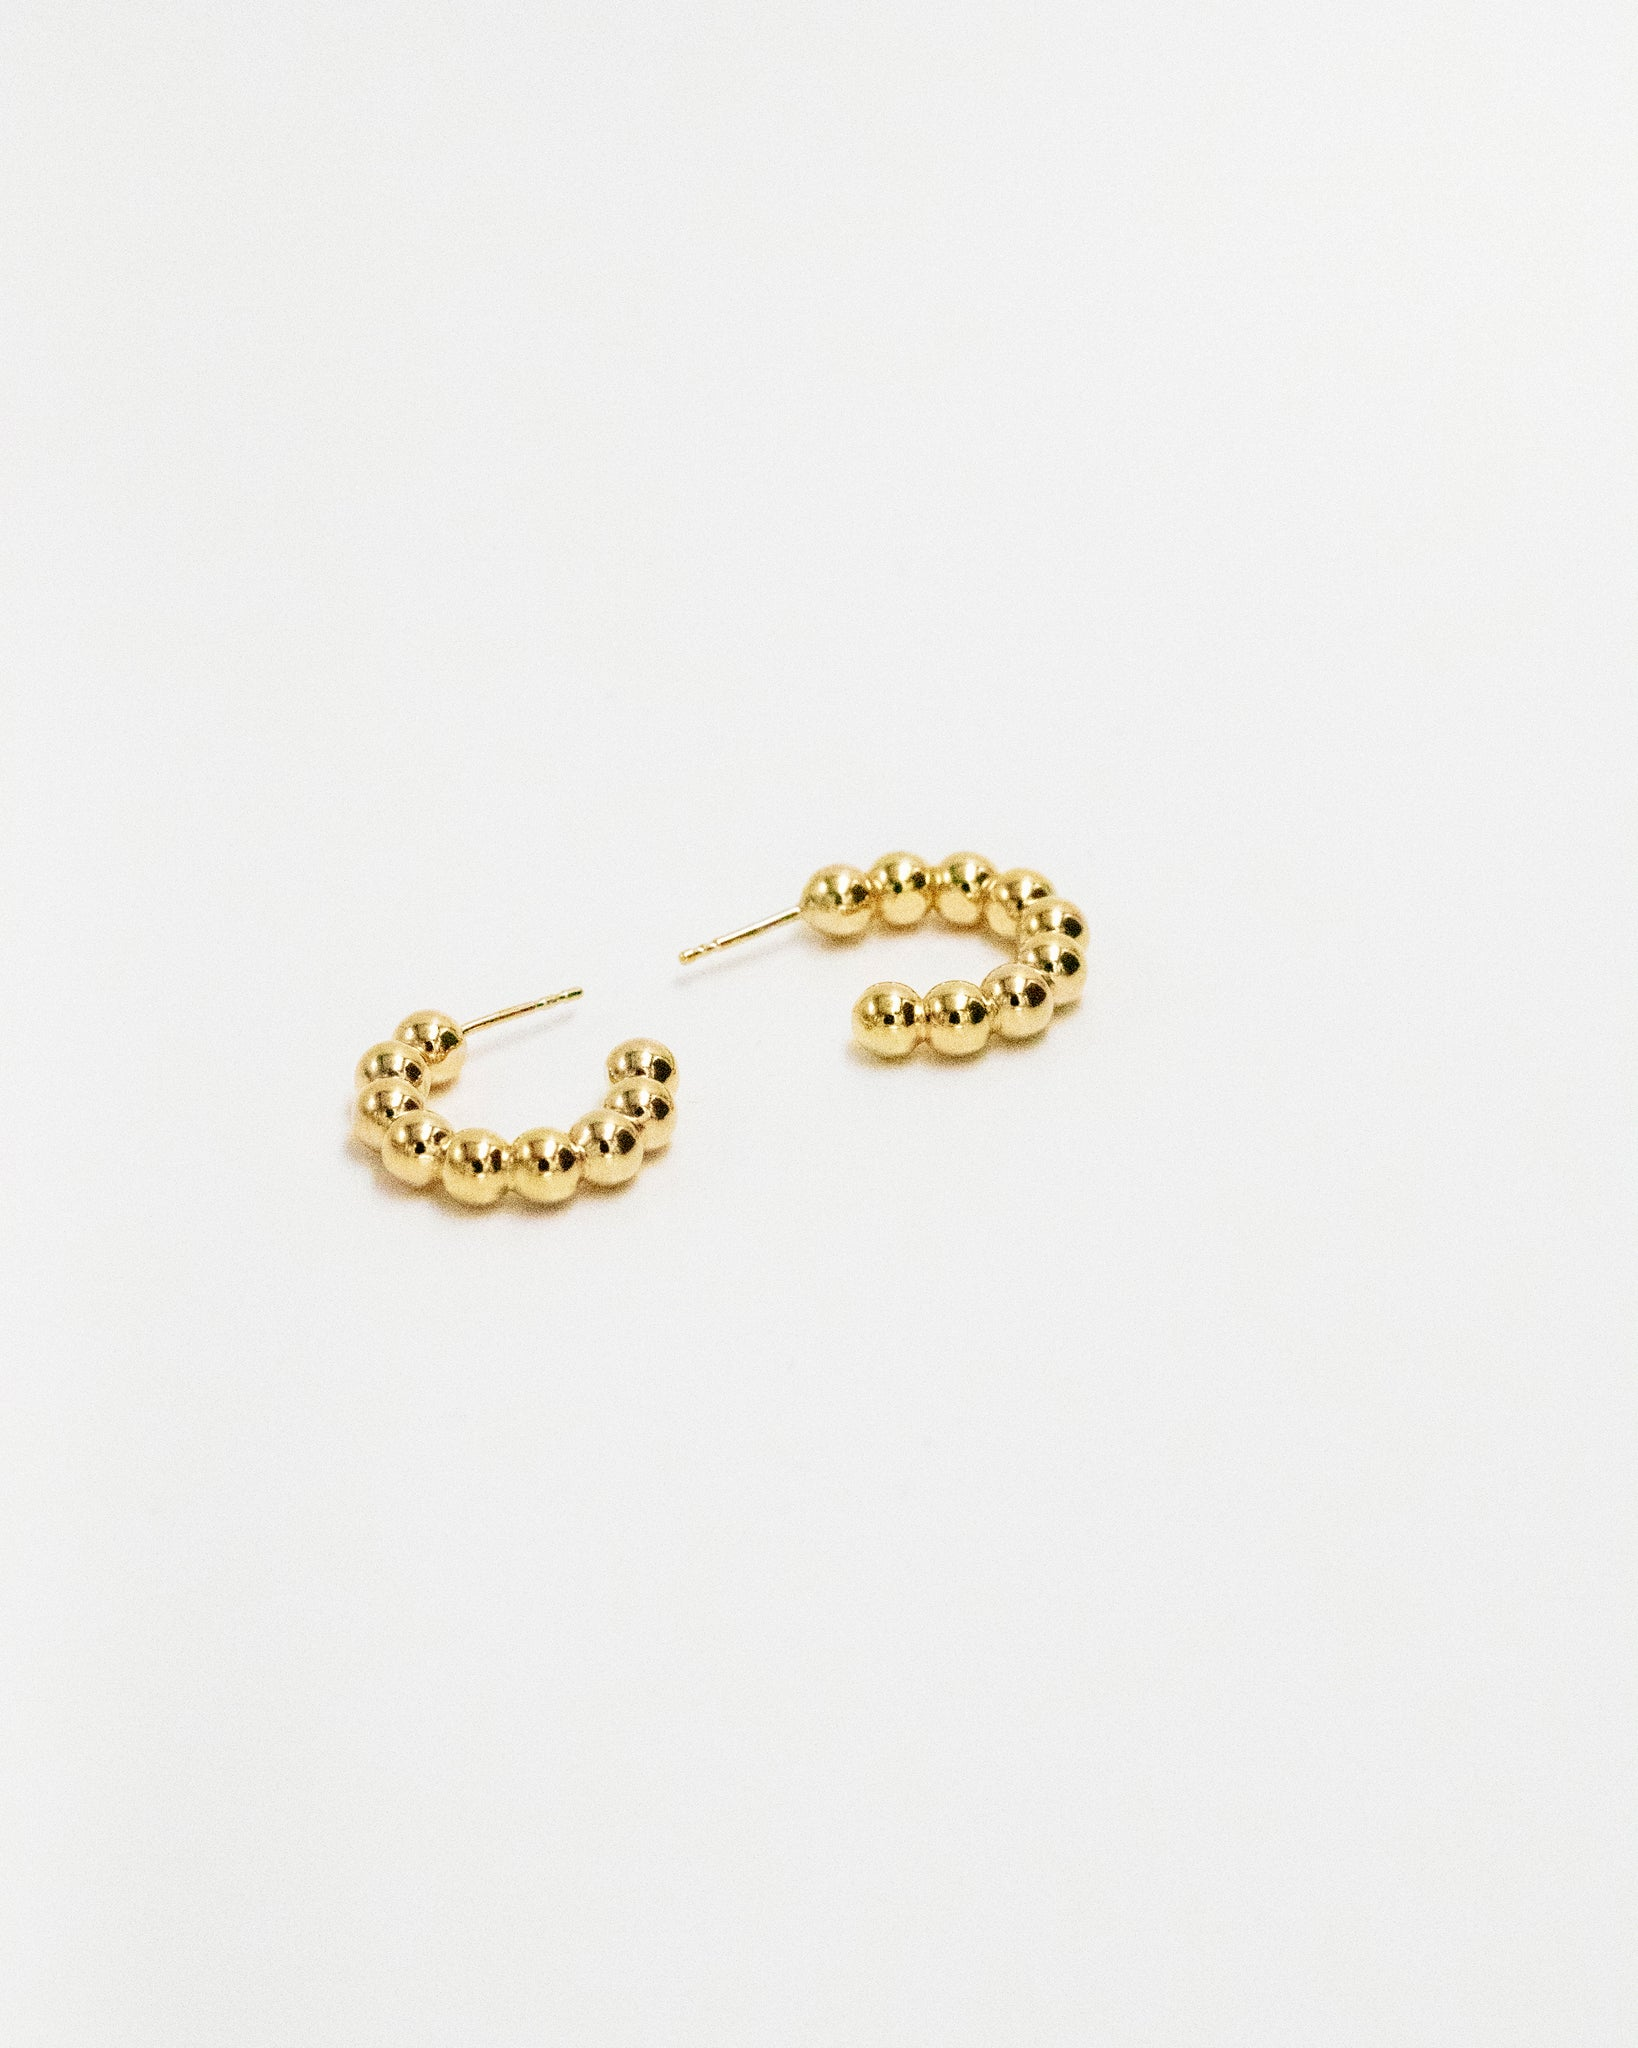 Eyra earrings - IDAMARI